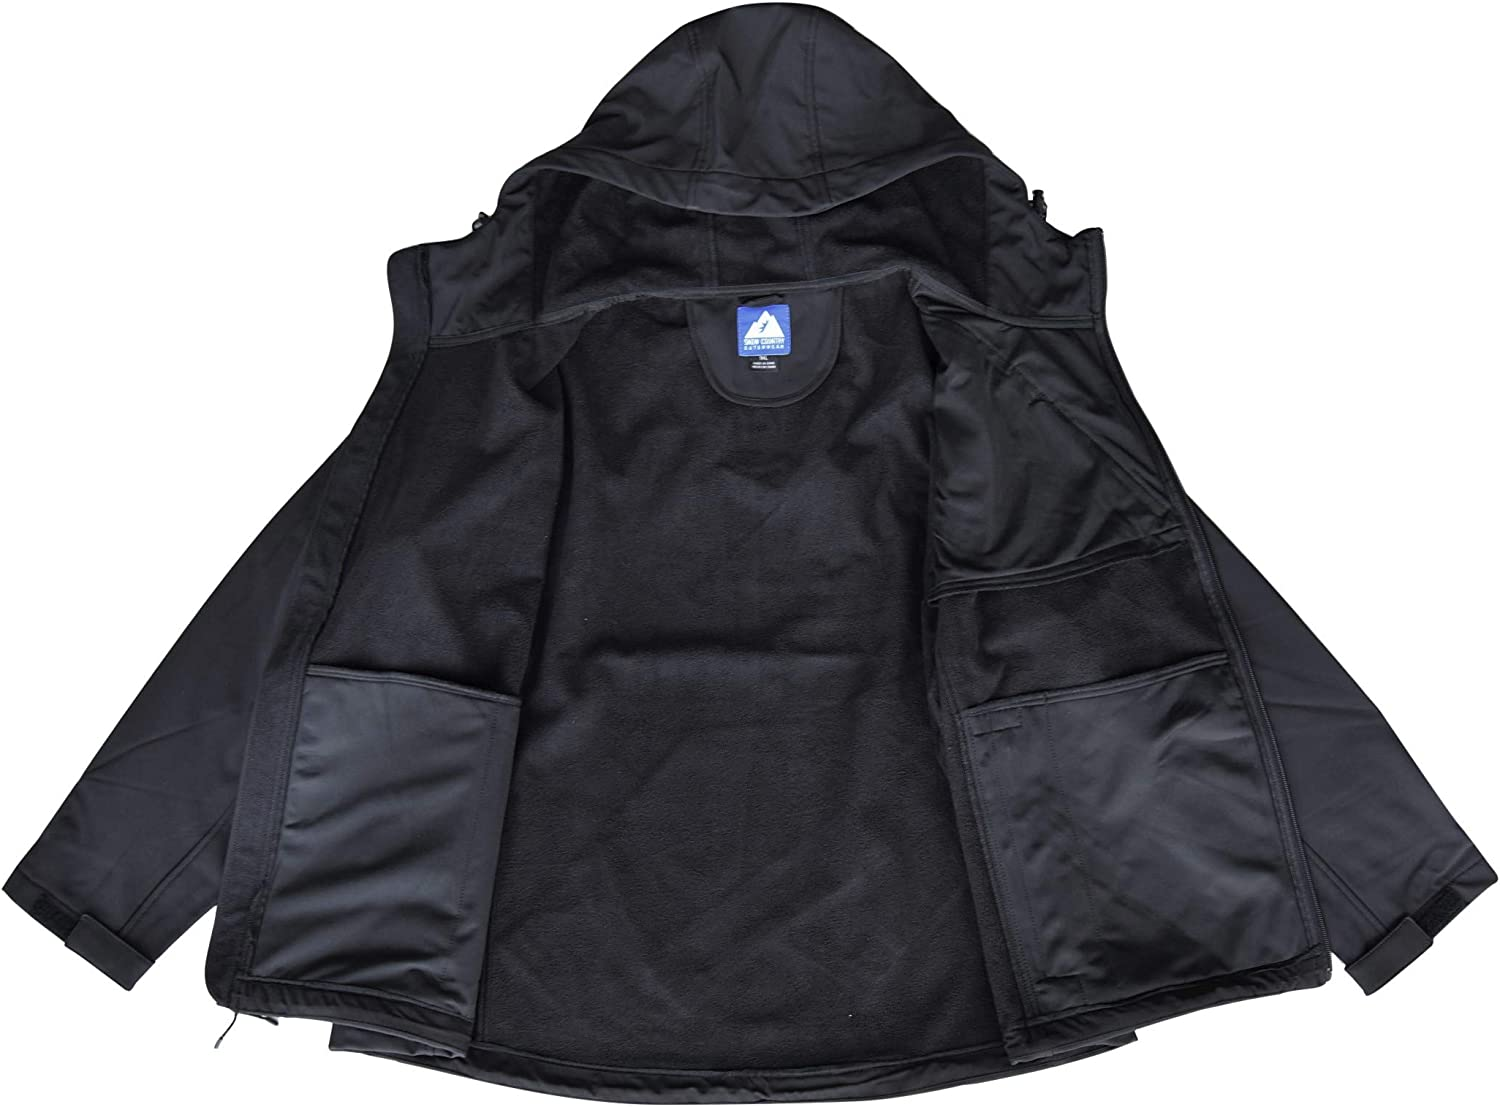 Snow Country Outerwear Womens Plus Size 1X-6X Micro Fleece Soft Shell Jacket Coat